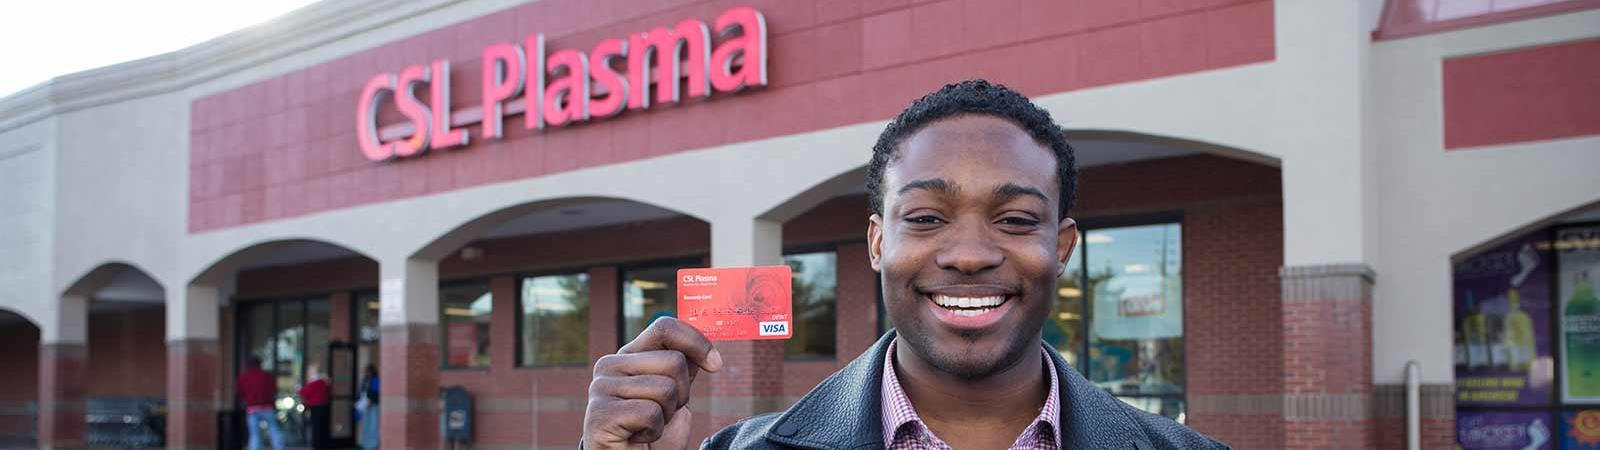 csl plasma reloadable debit card